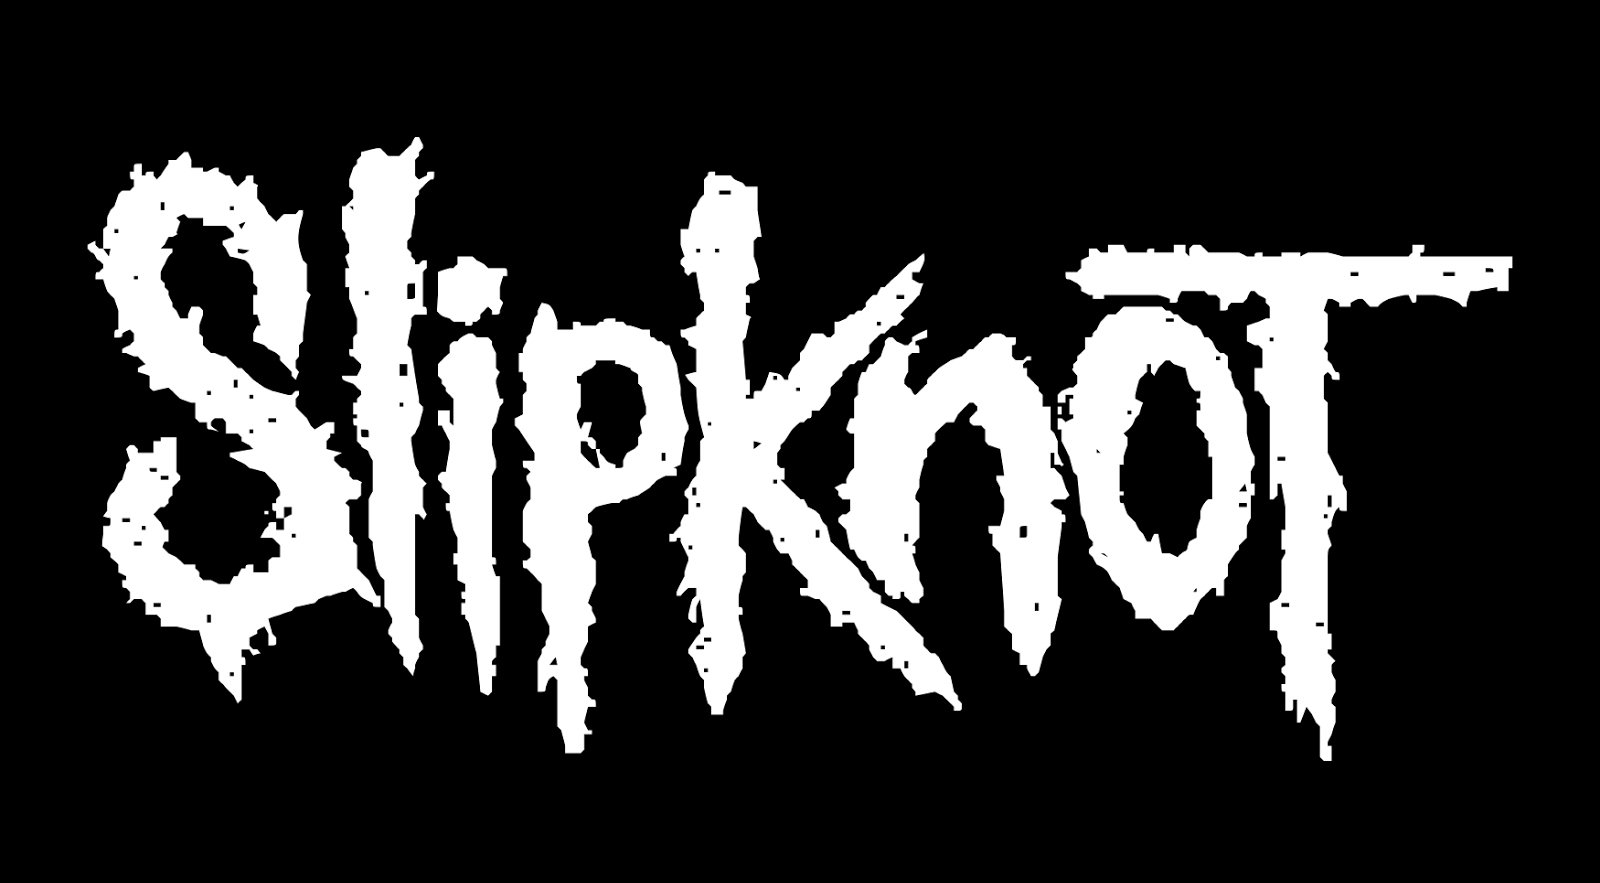 Slipknot logo slipknot symbol meaning history and evolution color of the slipknot logo biocorpaavc Choice Image